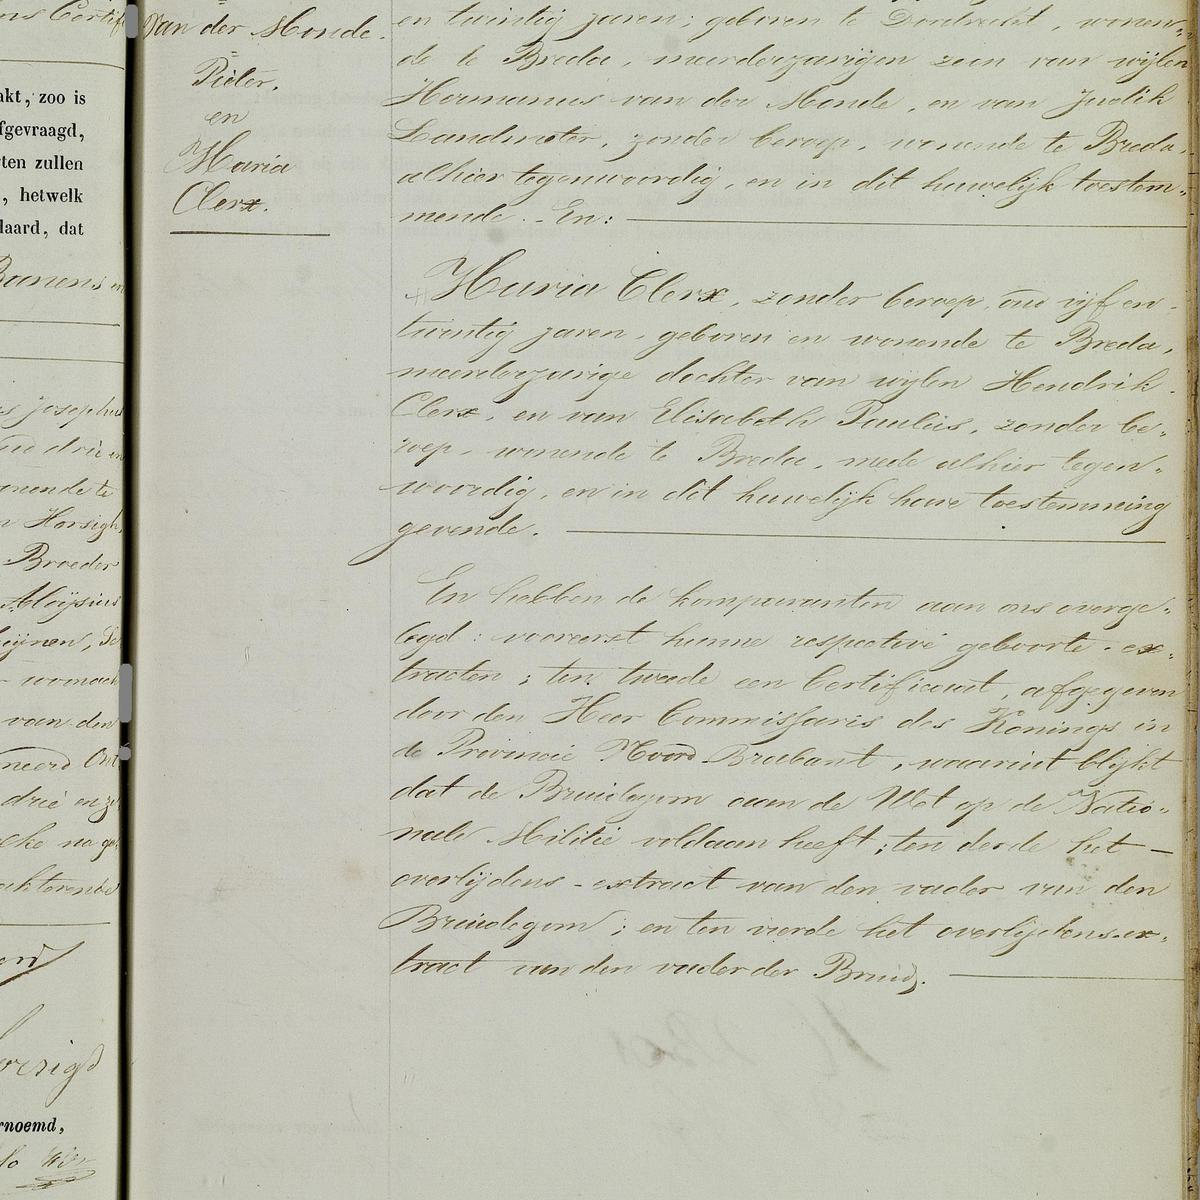 Civil registry of marriages, Breda, 1859, record 75, right page